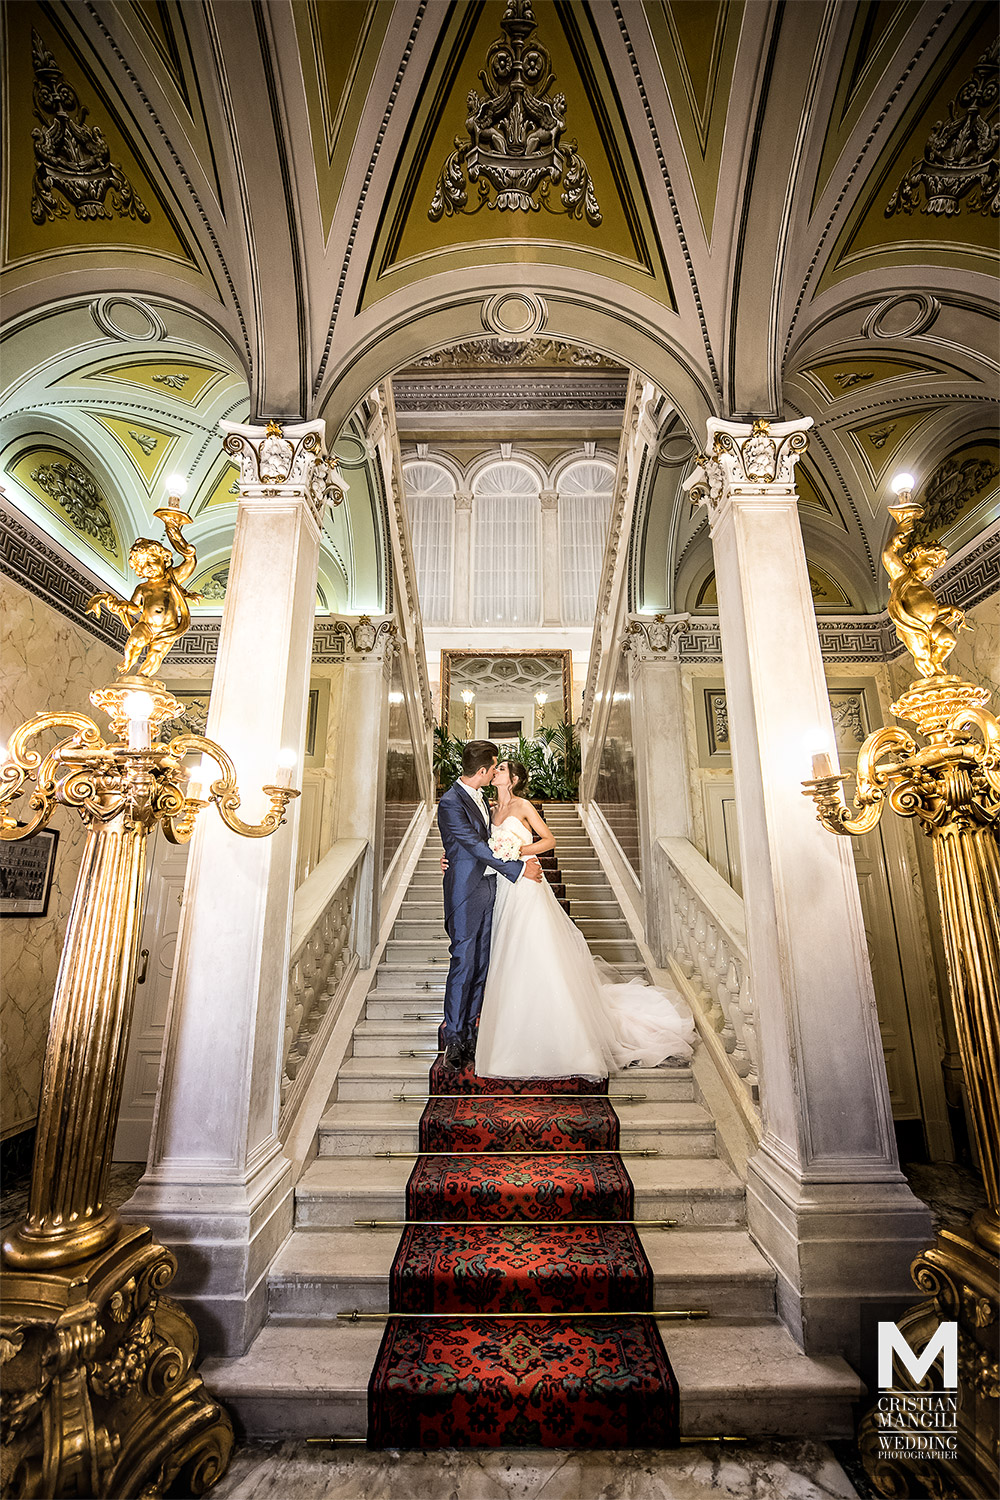 artistic-wedding-photo-bride-and-groom-kissing-in-villa-serbelloni-como-lake